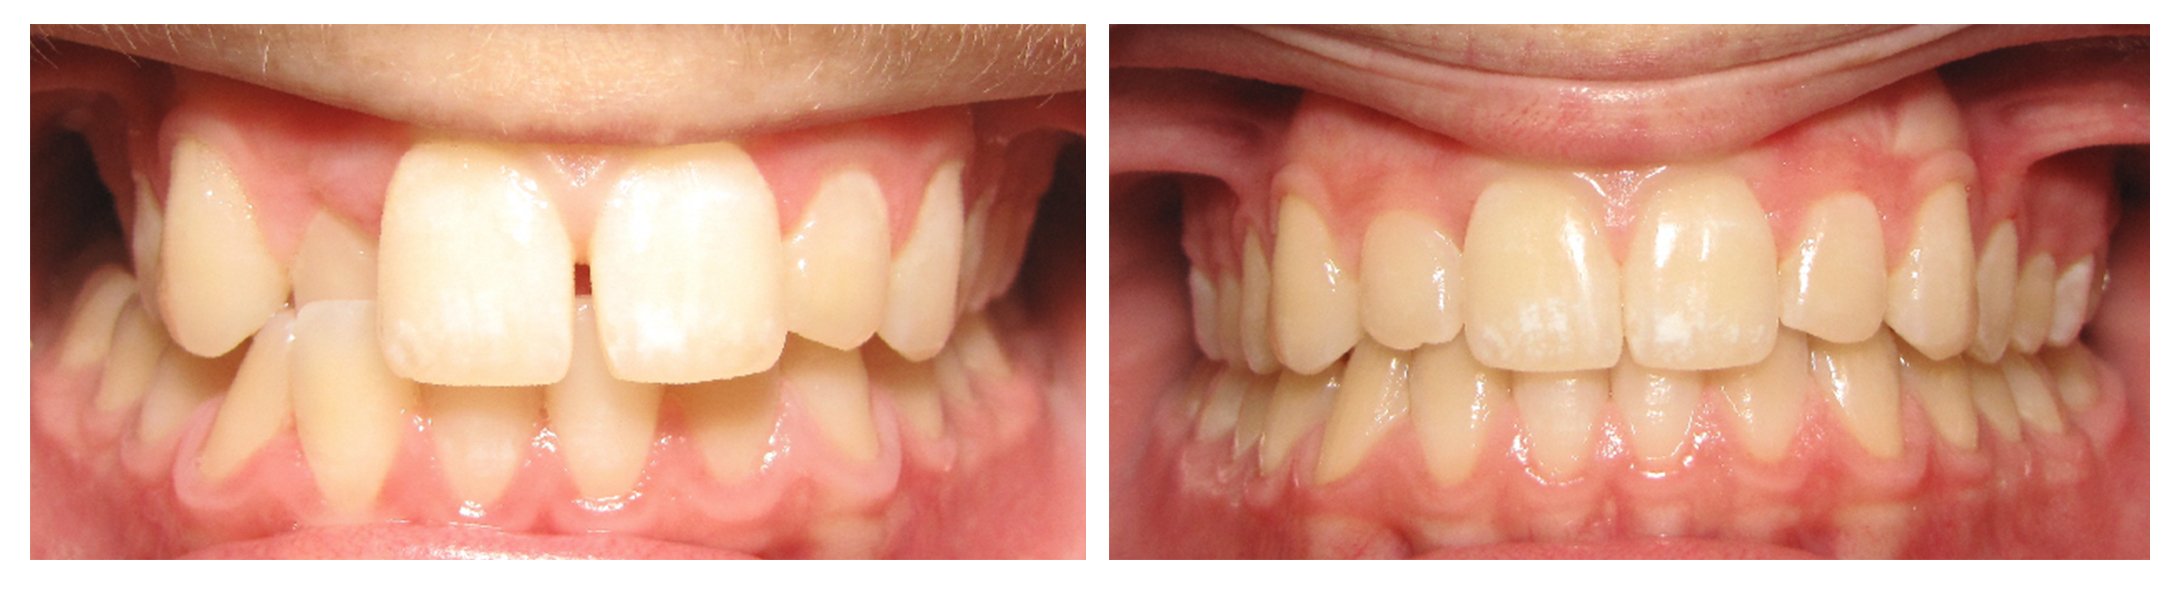 Misaligned teeth in this example were corrected with  Invisalign . Every treatment plan is different. Dr. Green will assess your overall health goals and make recommendations to help you achieve a healthy smile.